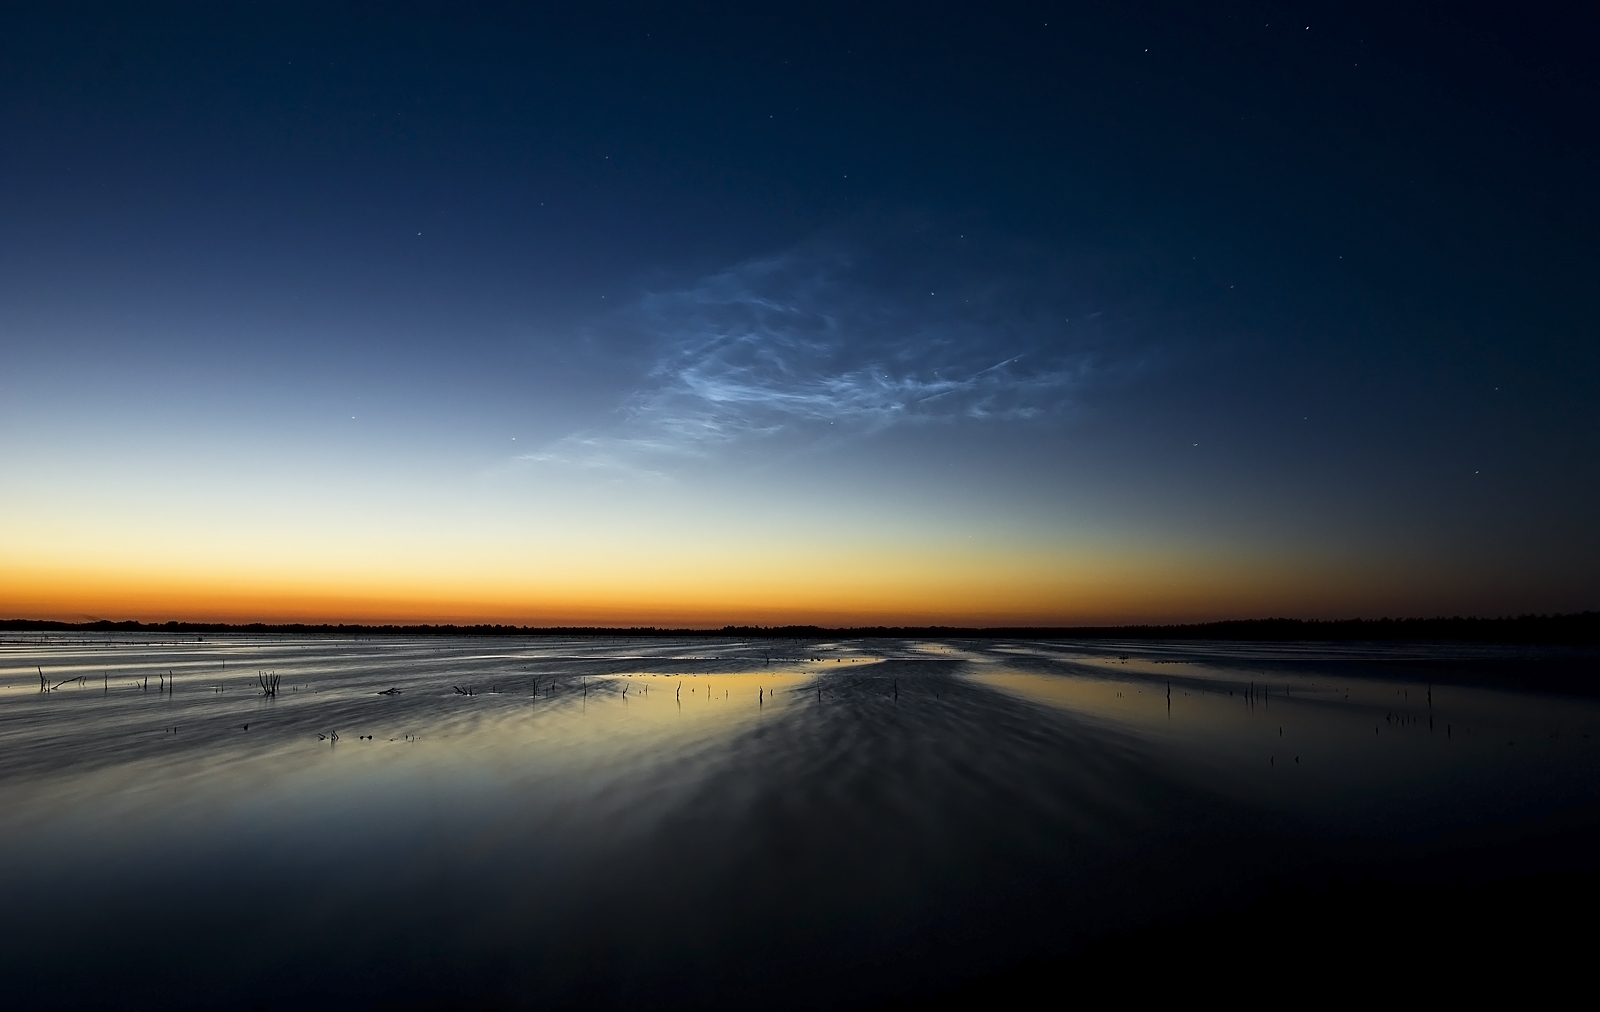 http://upload.wikimedia.org/wikipedia/commons/a/a1/Noctilucent_clouds_bargerveen.jpg